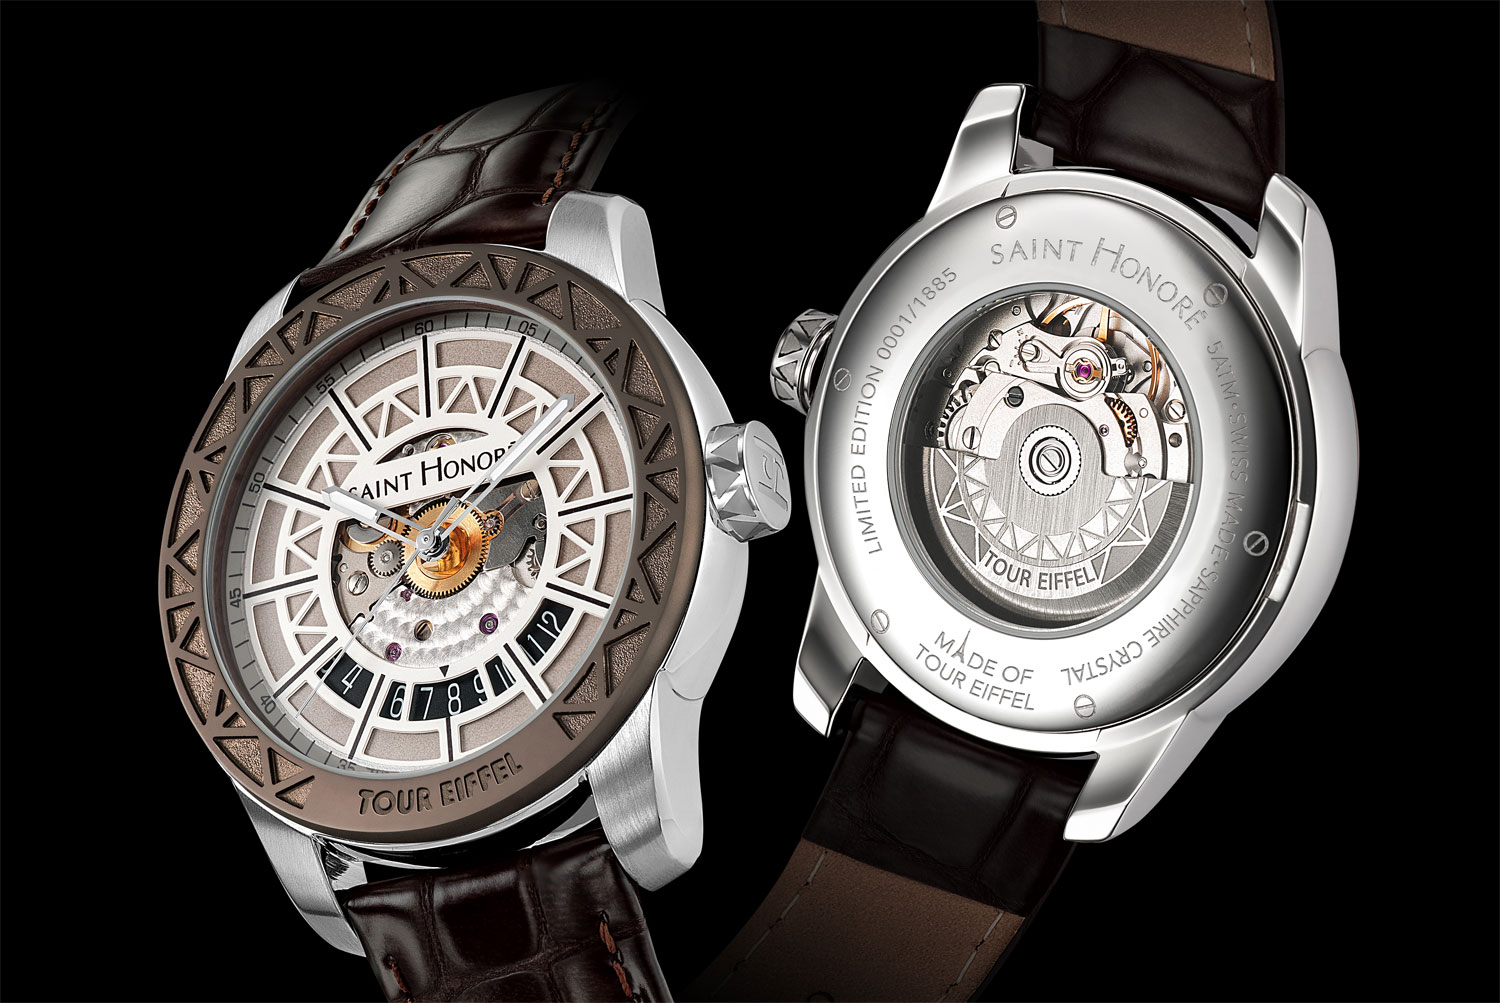 The Saint Honore Tour Eiffel limited edition timepiece